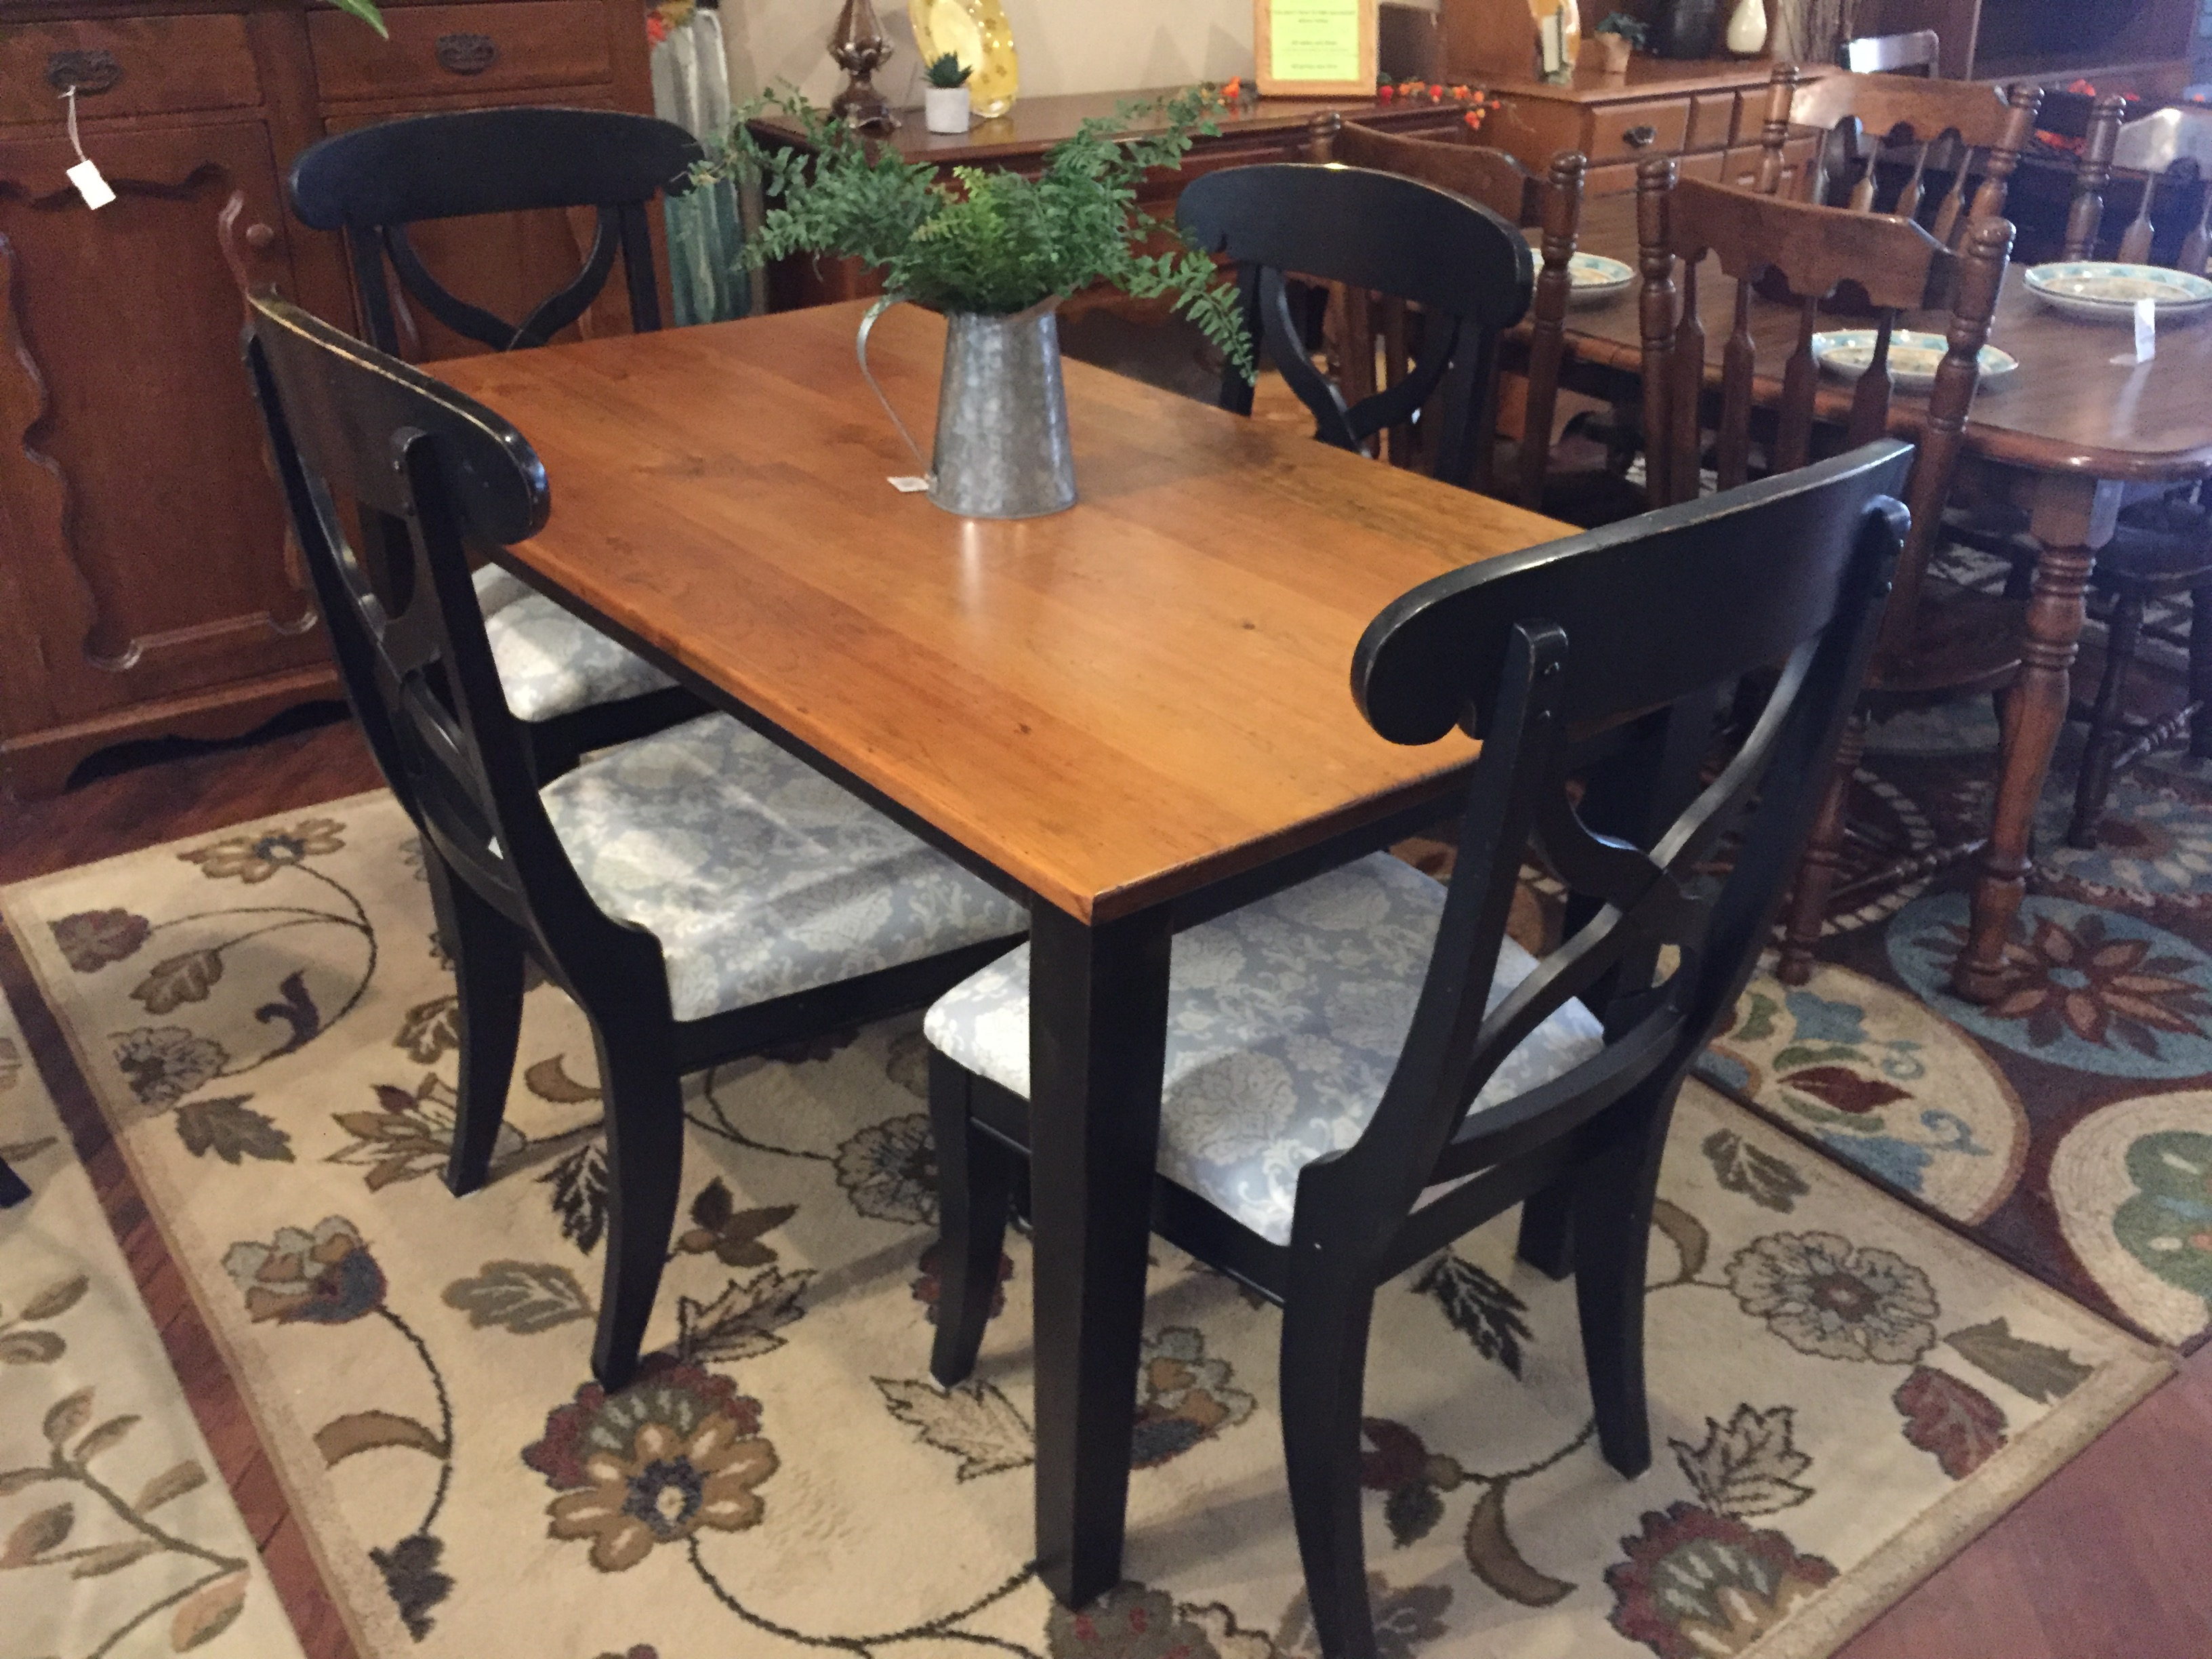 BLACK & WOOD TABLE & 4 CHAIRS